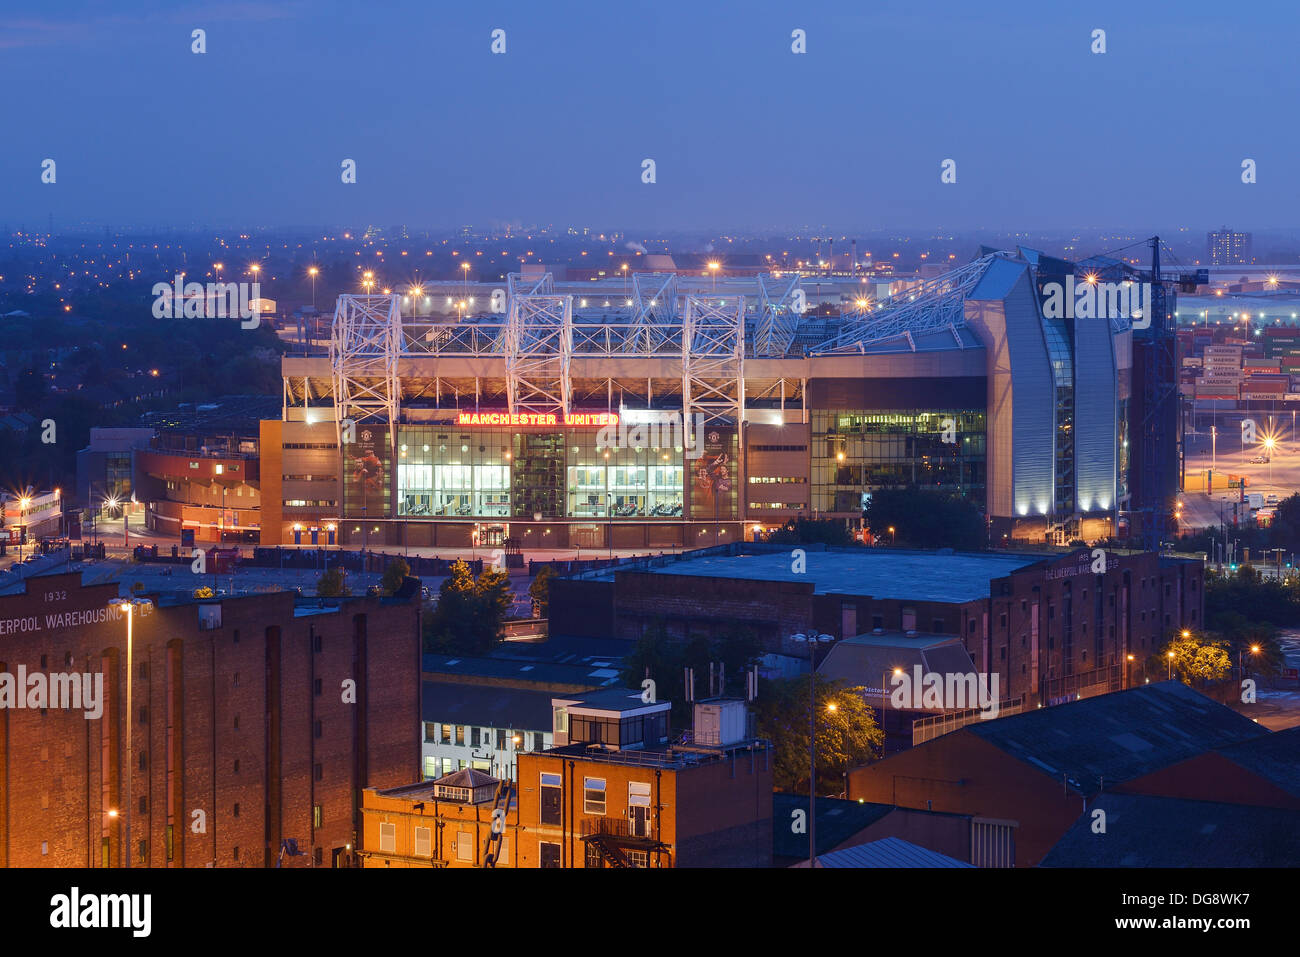 Manchester United Old Trafford football stadium UK - Stock Image